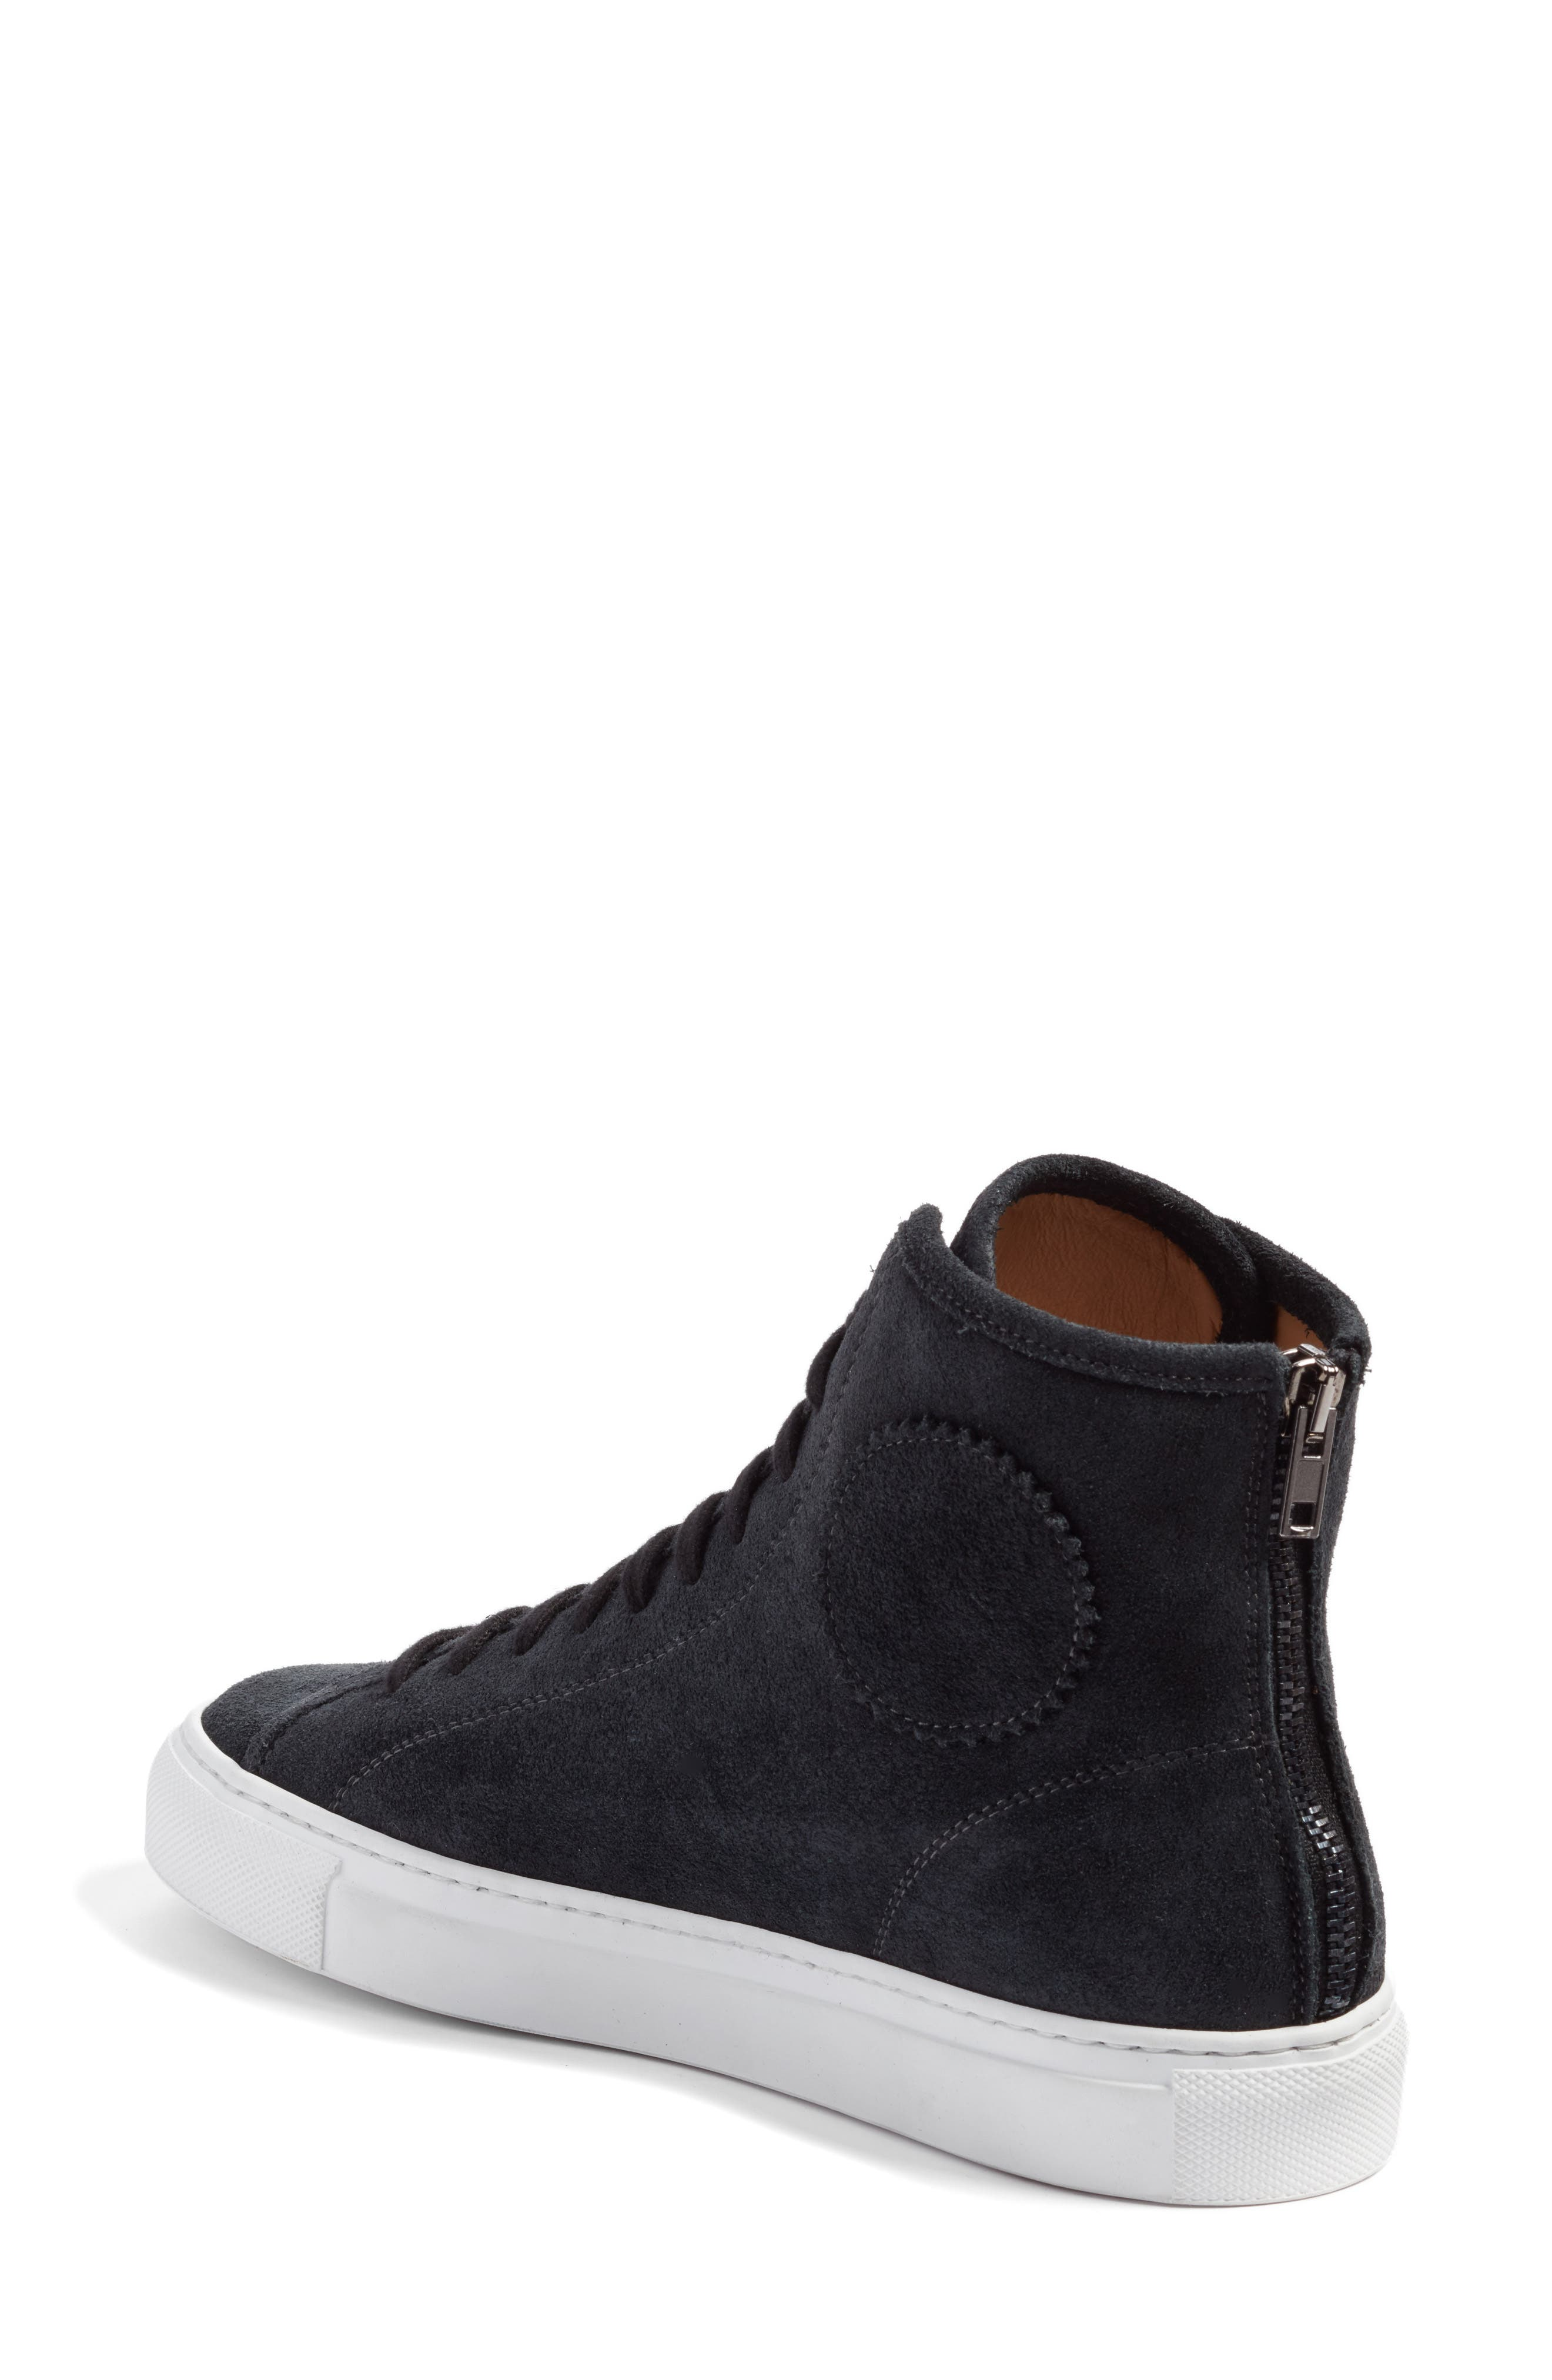 Alternate Image 2  - Common Projects Tournament High Top Sneakers (Women)